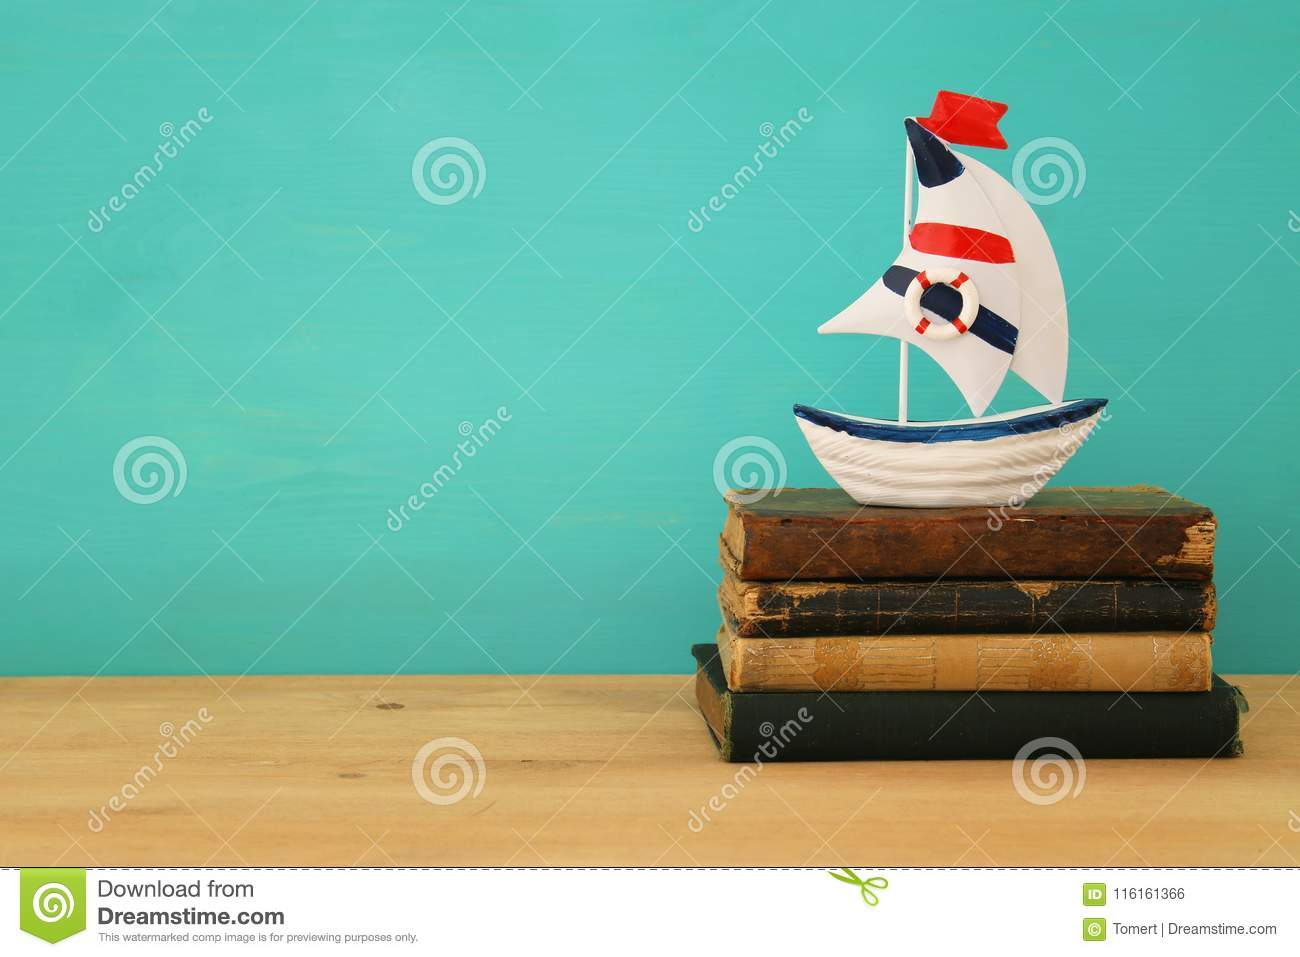 Vacation And Summer Image With Boat And Antique Books Over Wooden